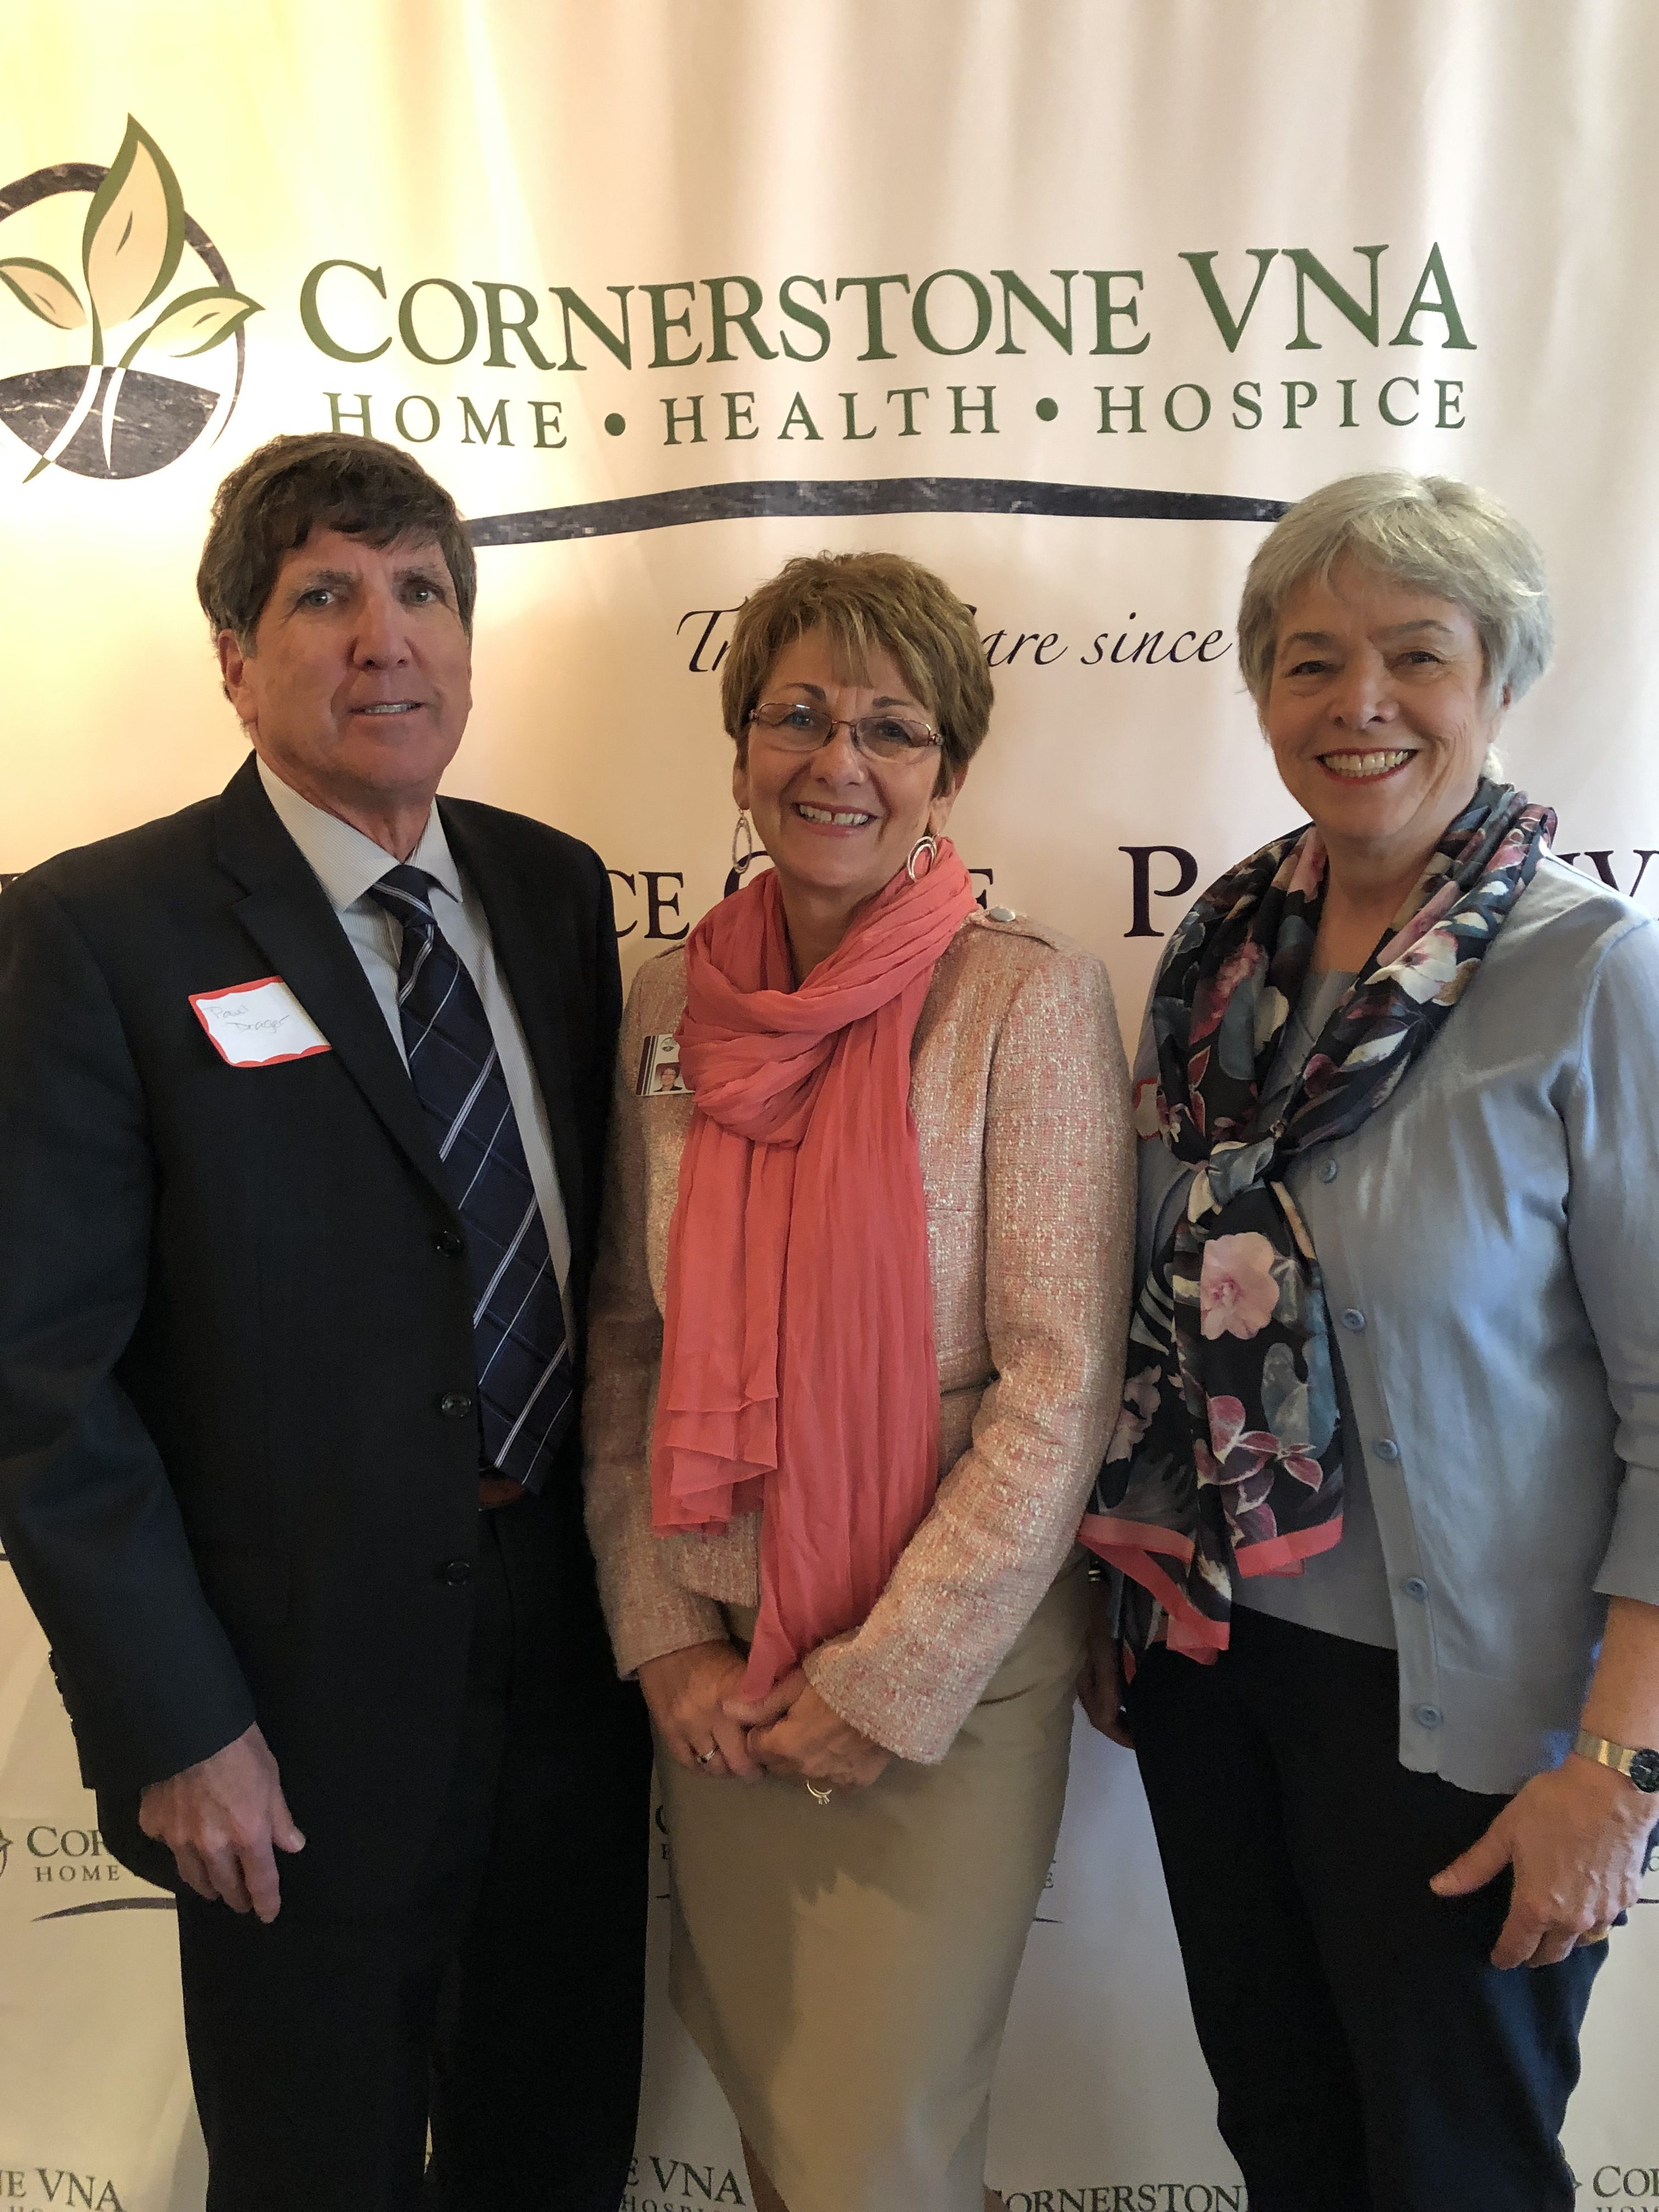 Cornerstone VNA Announces New Board President, Officers and Members